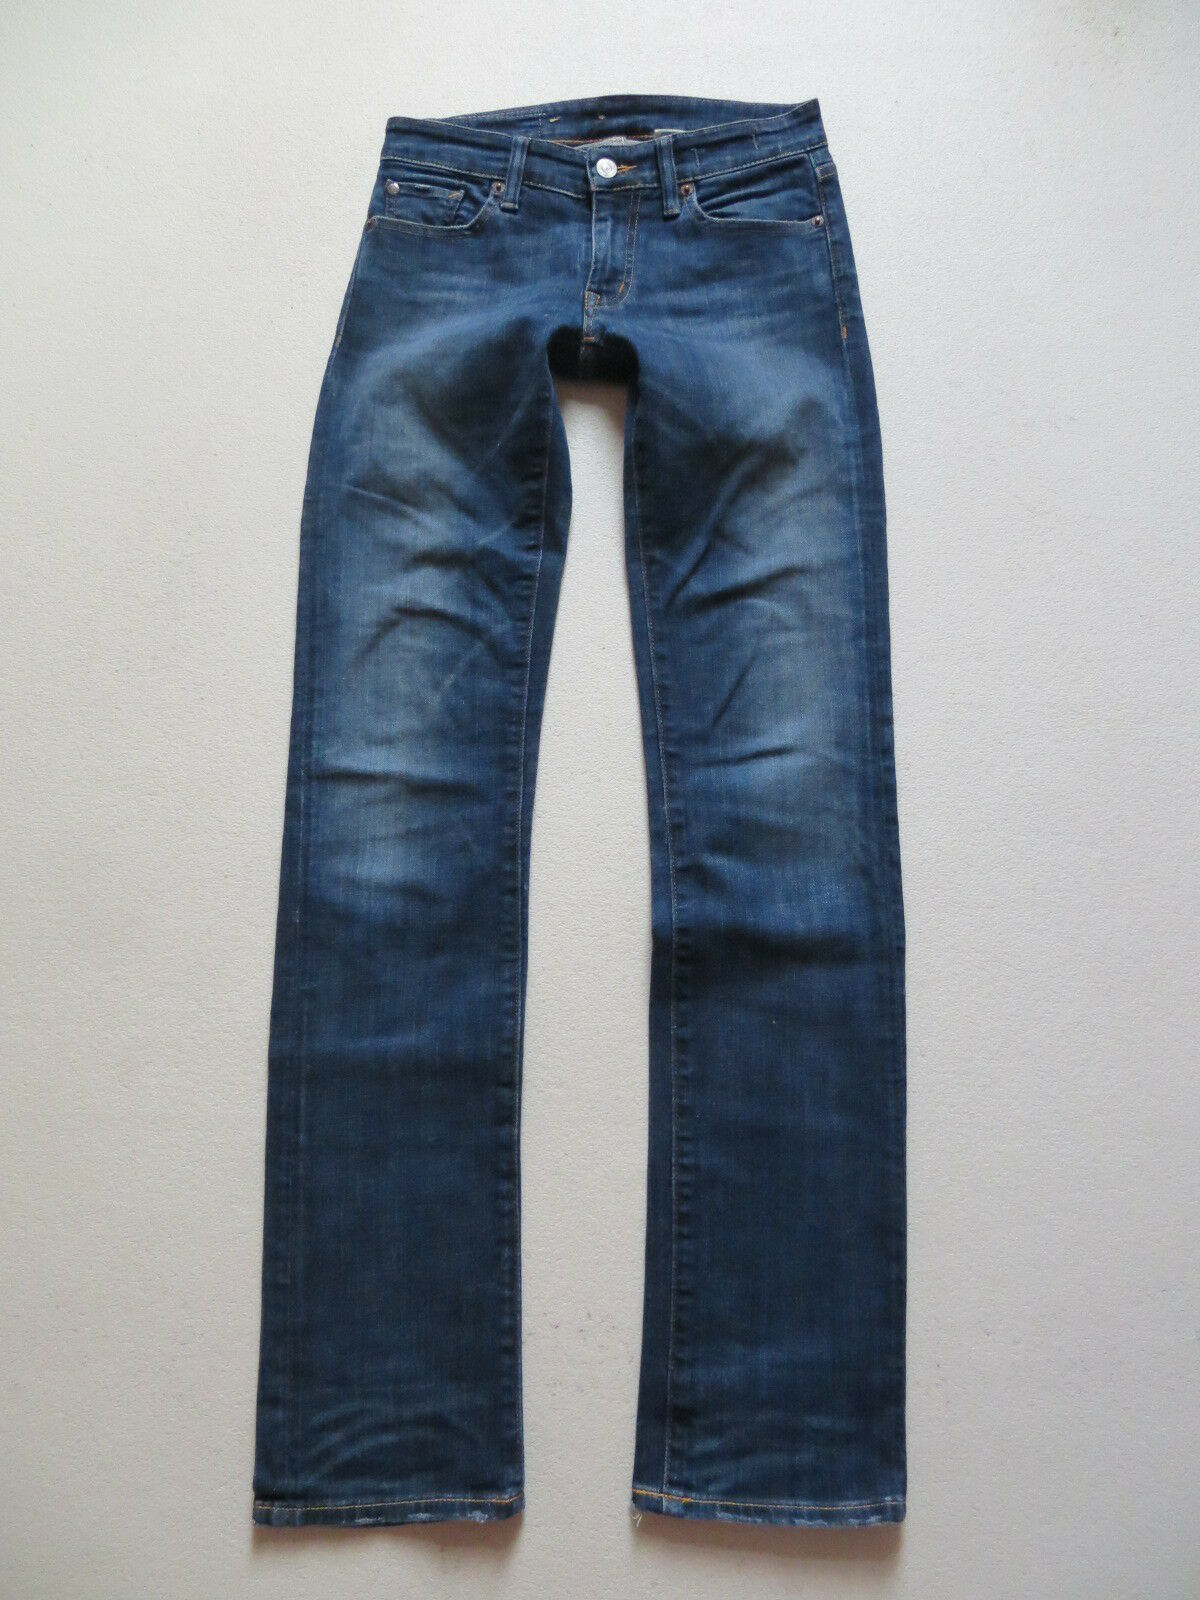 Ralph Lauren DENIM & SUPPLY Stretch Jeans Hose, W 25  L 32, bluee, TOP Waschung